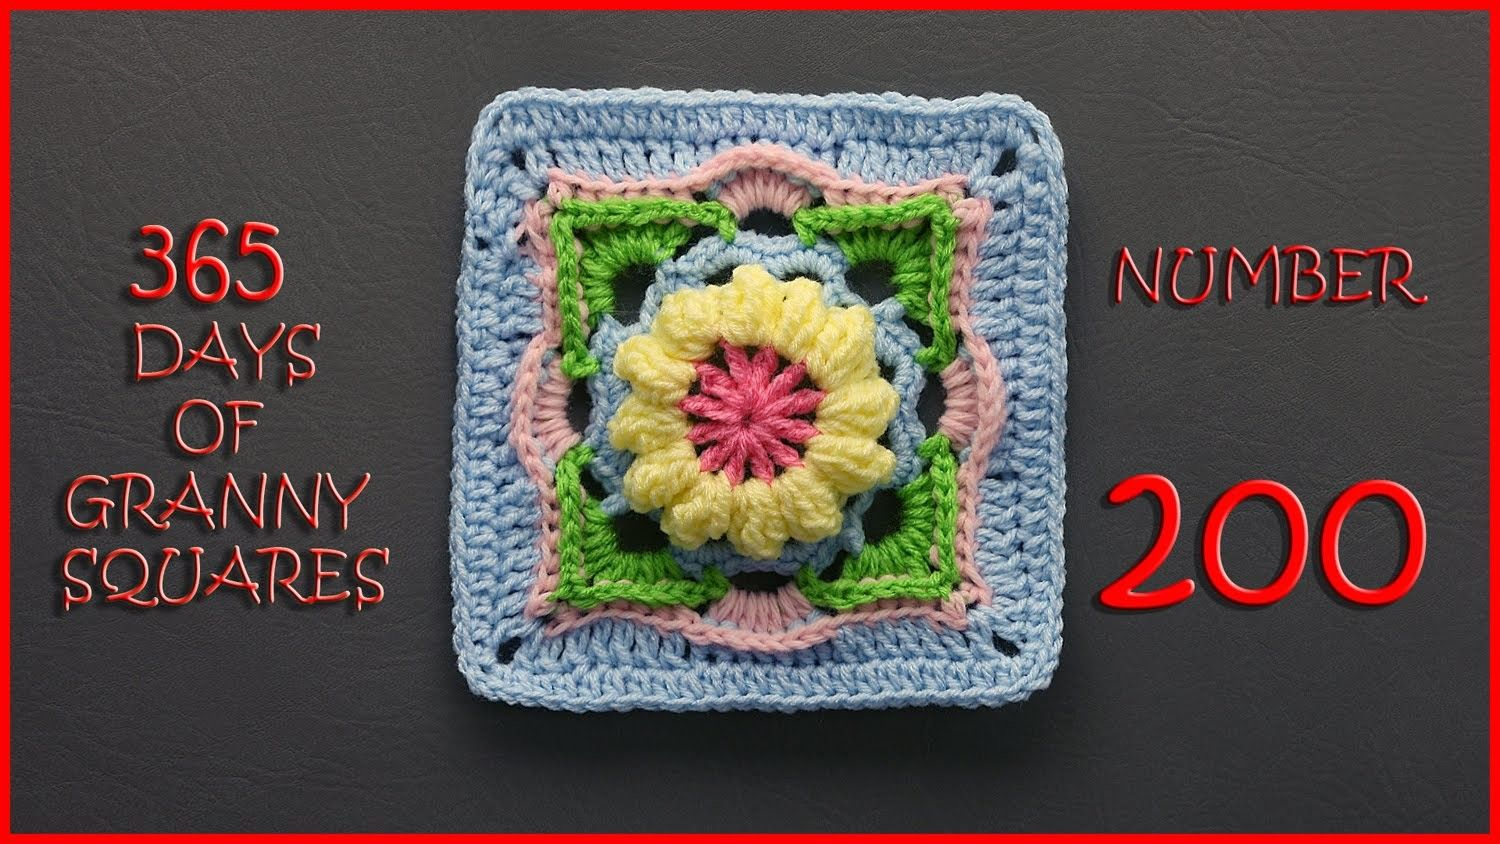 365 Days of Granny Squares Number 200